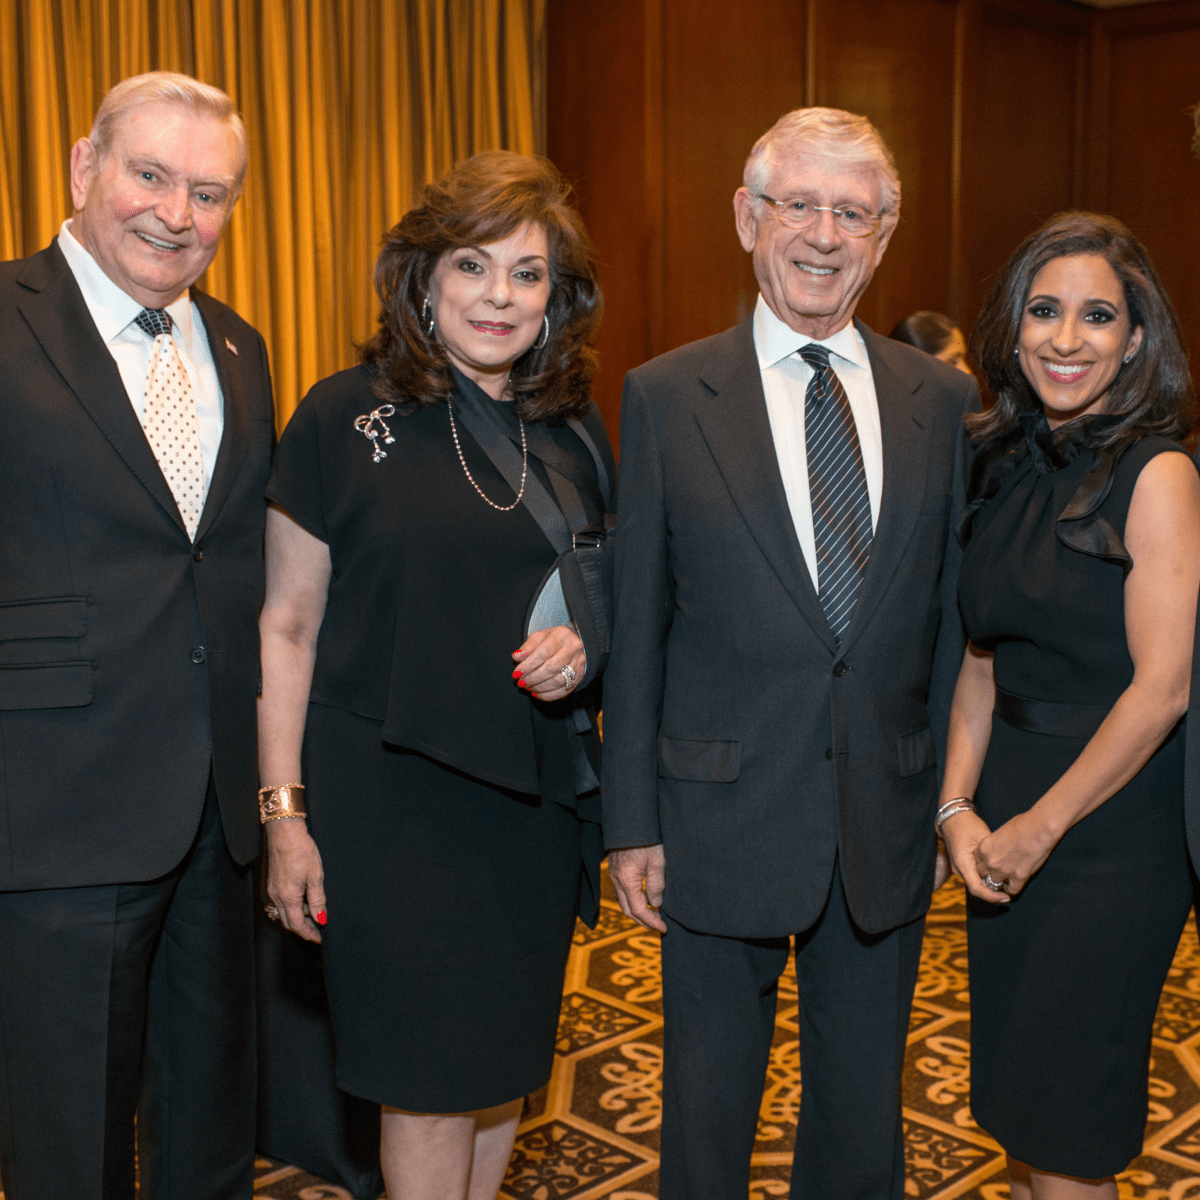 Crime Stoppers Gala Dave Ward, Laura Ward, Ted Koppel, Rania Mankarious, Ramy Mankarious